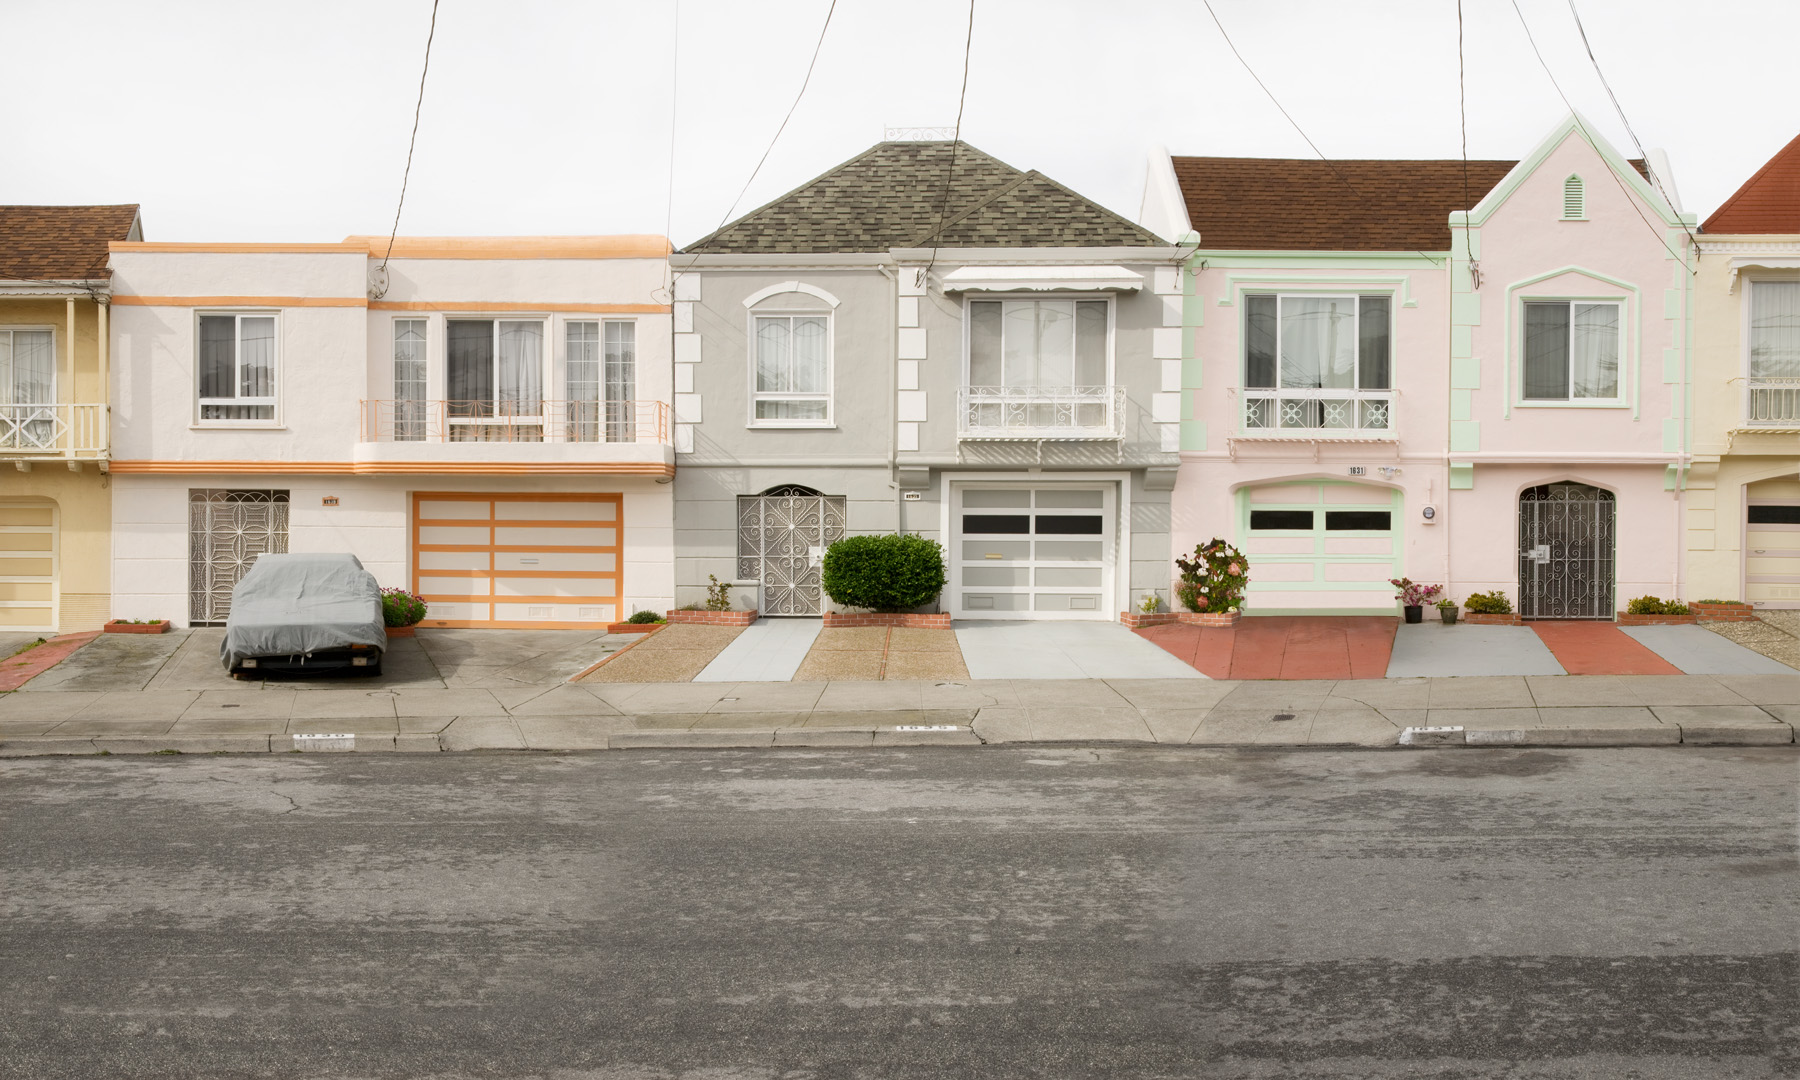 Airy Street , 24 x 40 inches, archival pigment print, 2009